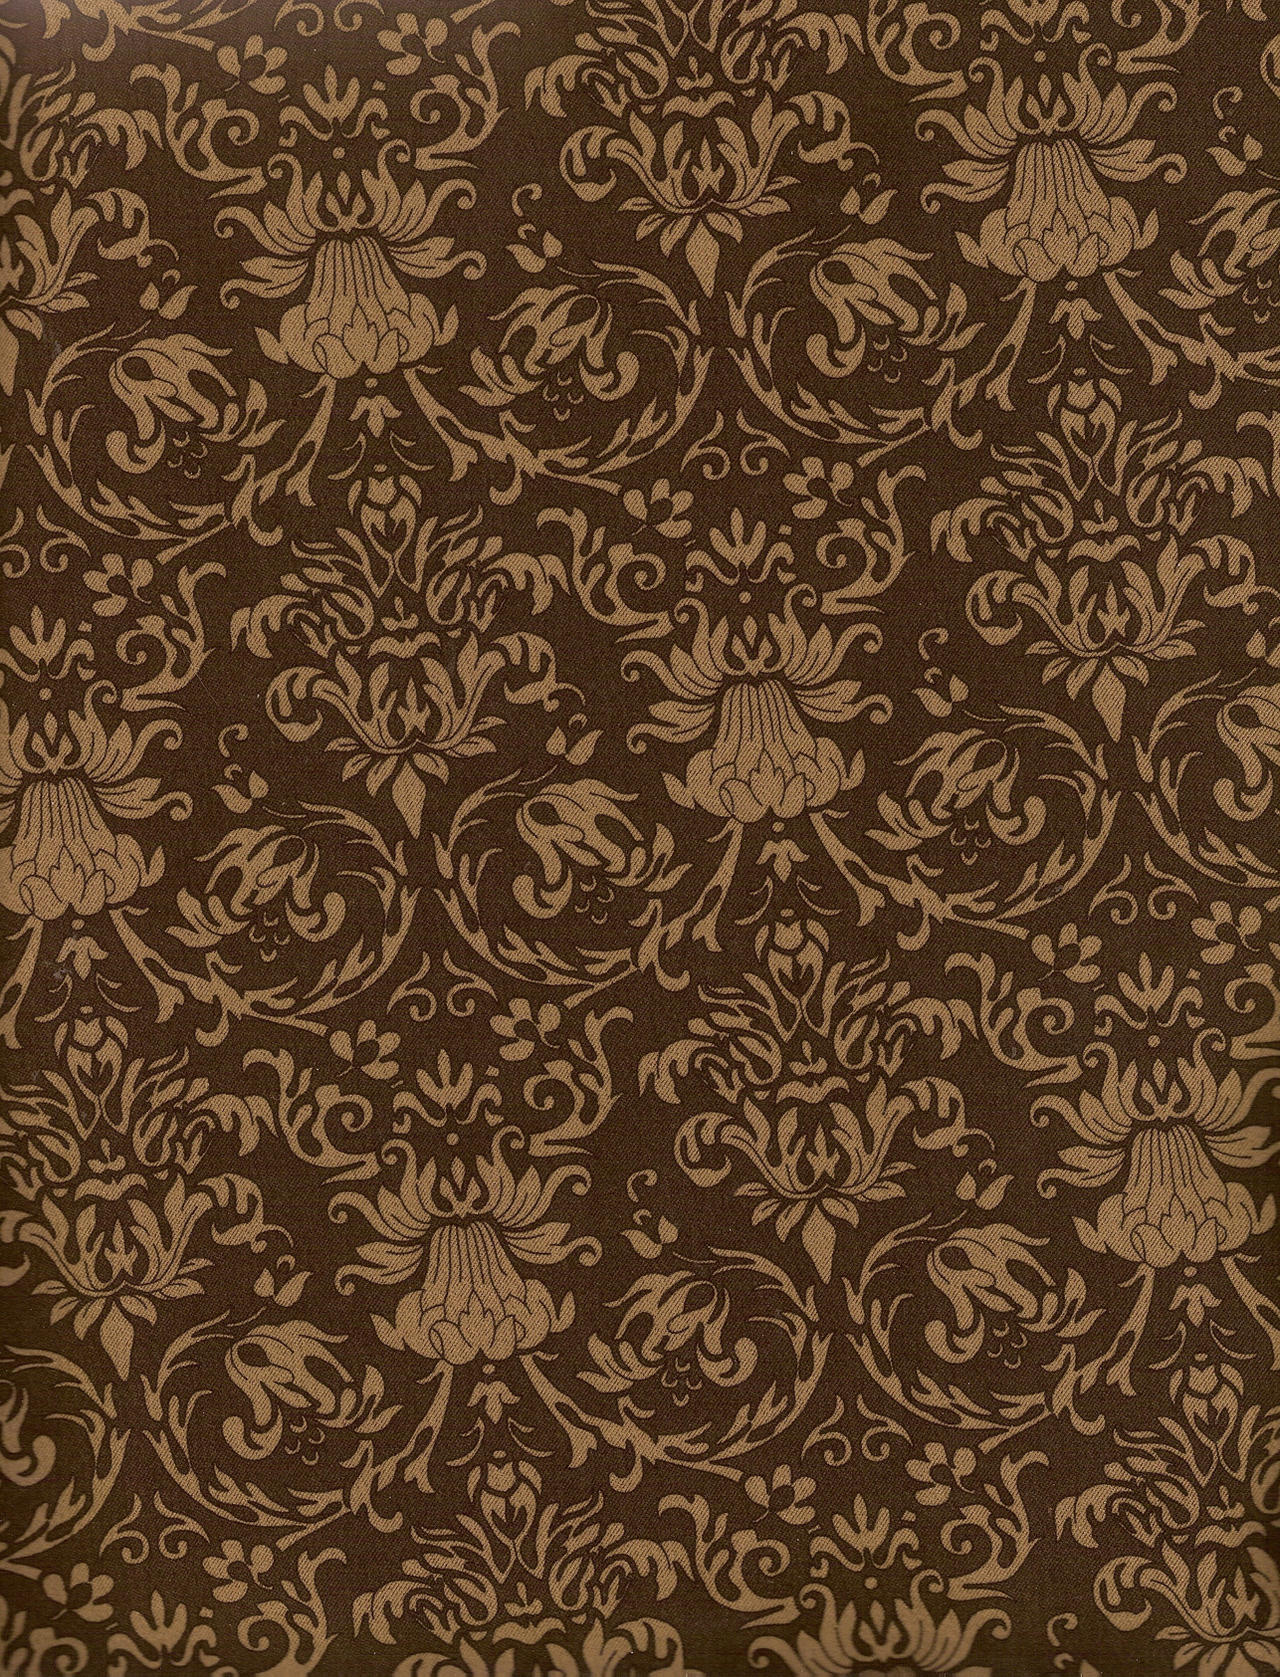 Art Nouveau Pattern Texture by Enchantedgal-Stock